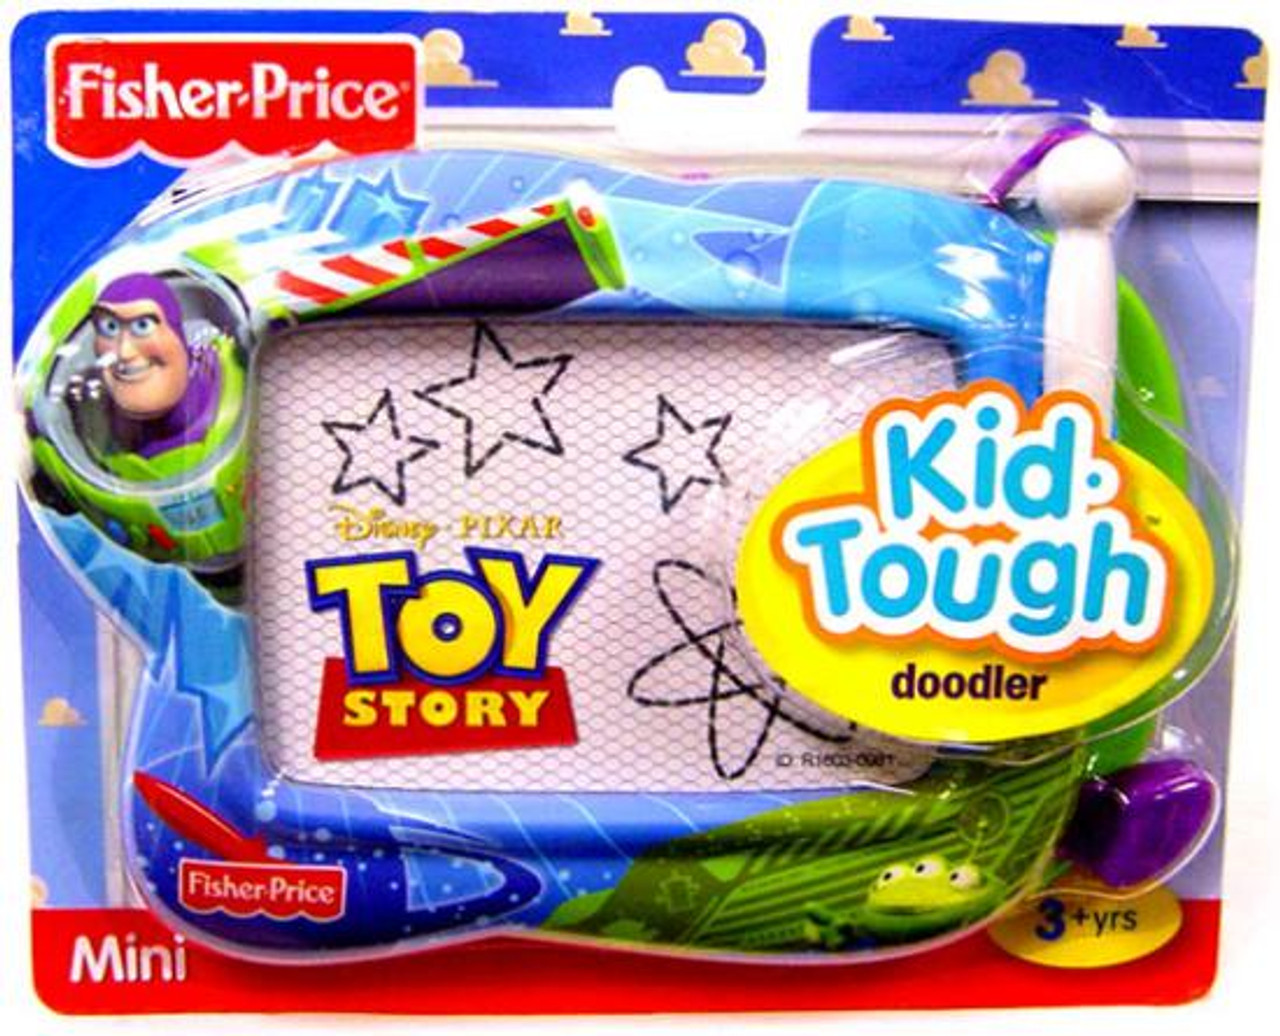 Fisher Price Toy Story 3 Kid-Tough Doodler [Buzz Lightyear]